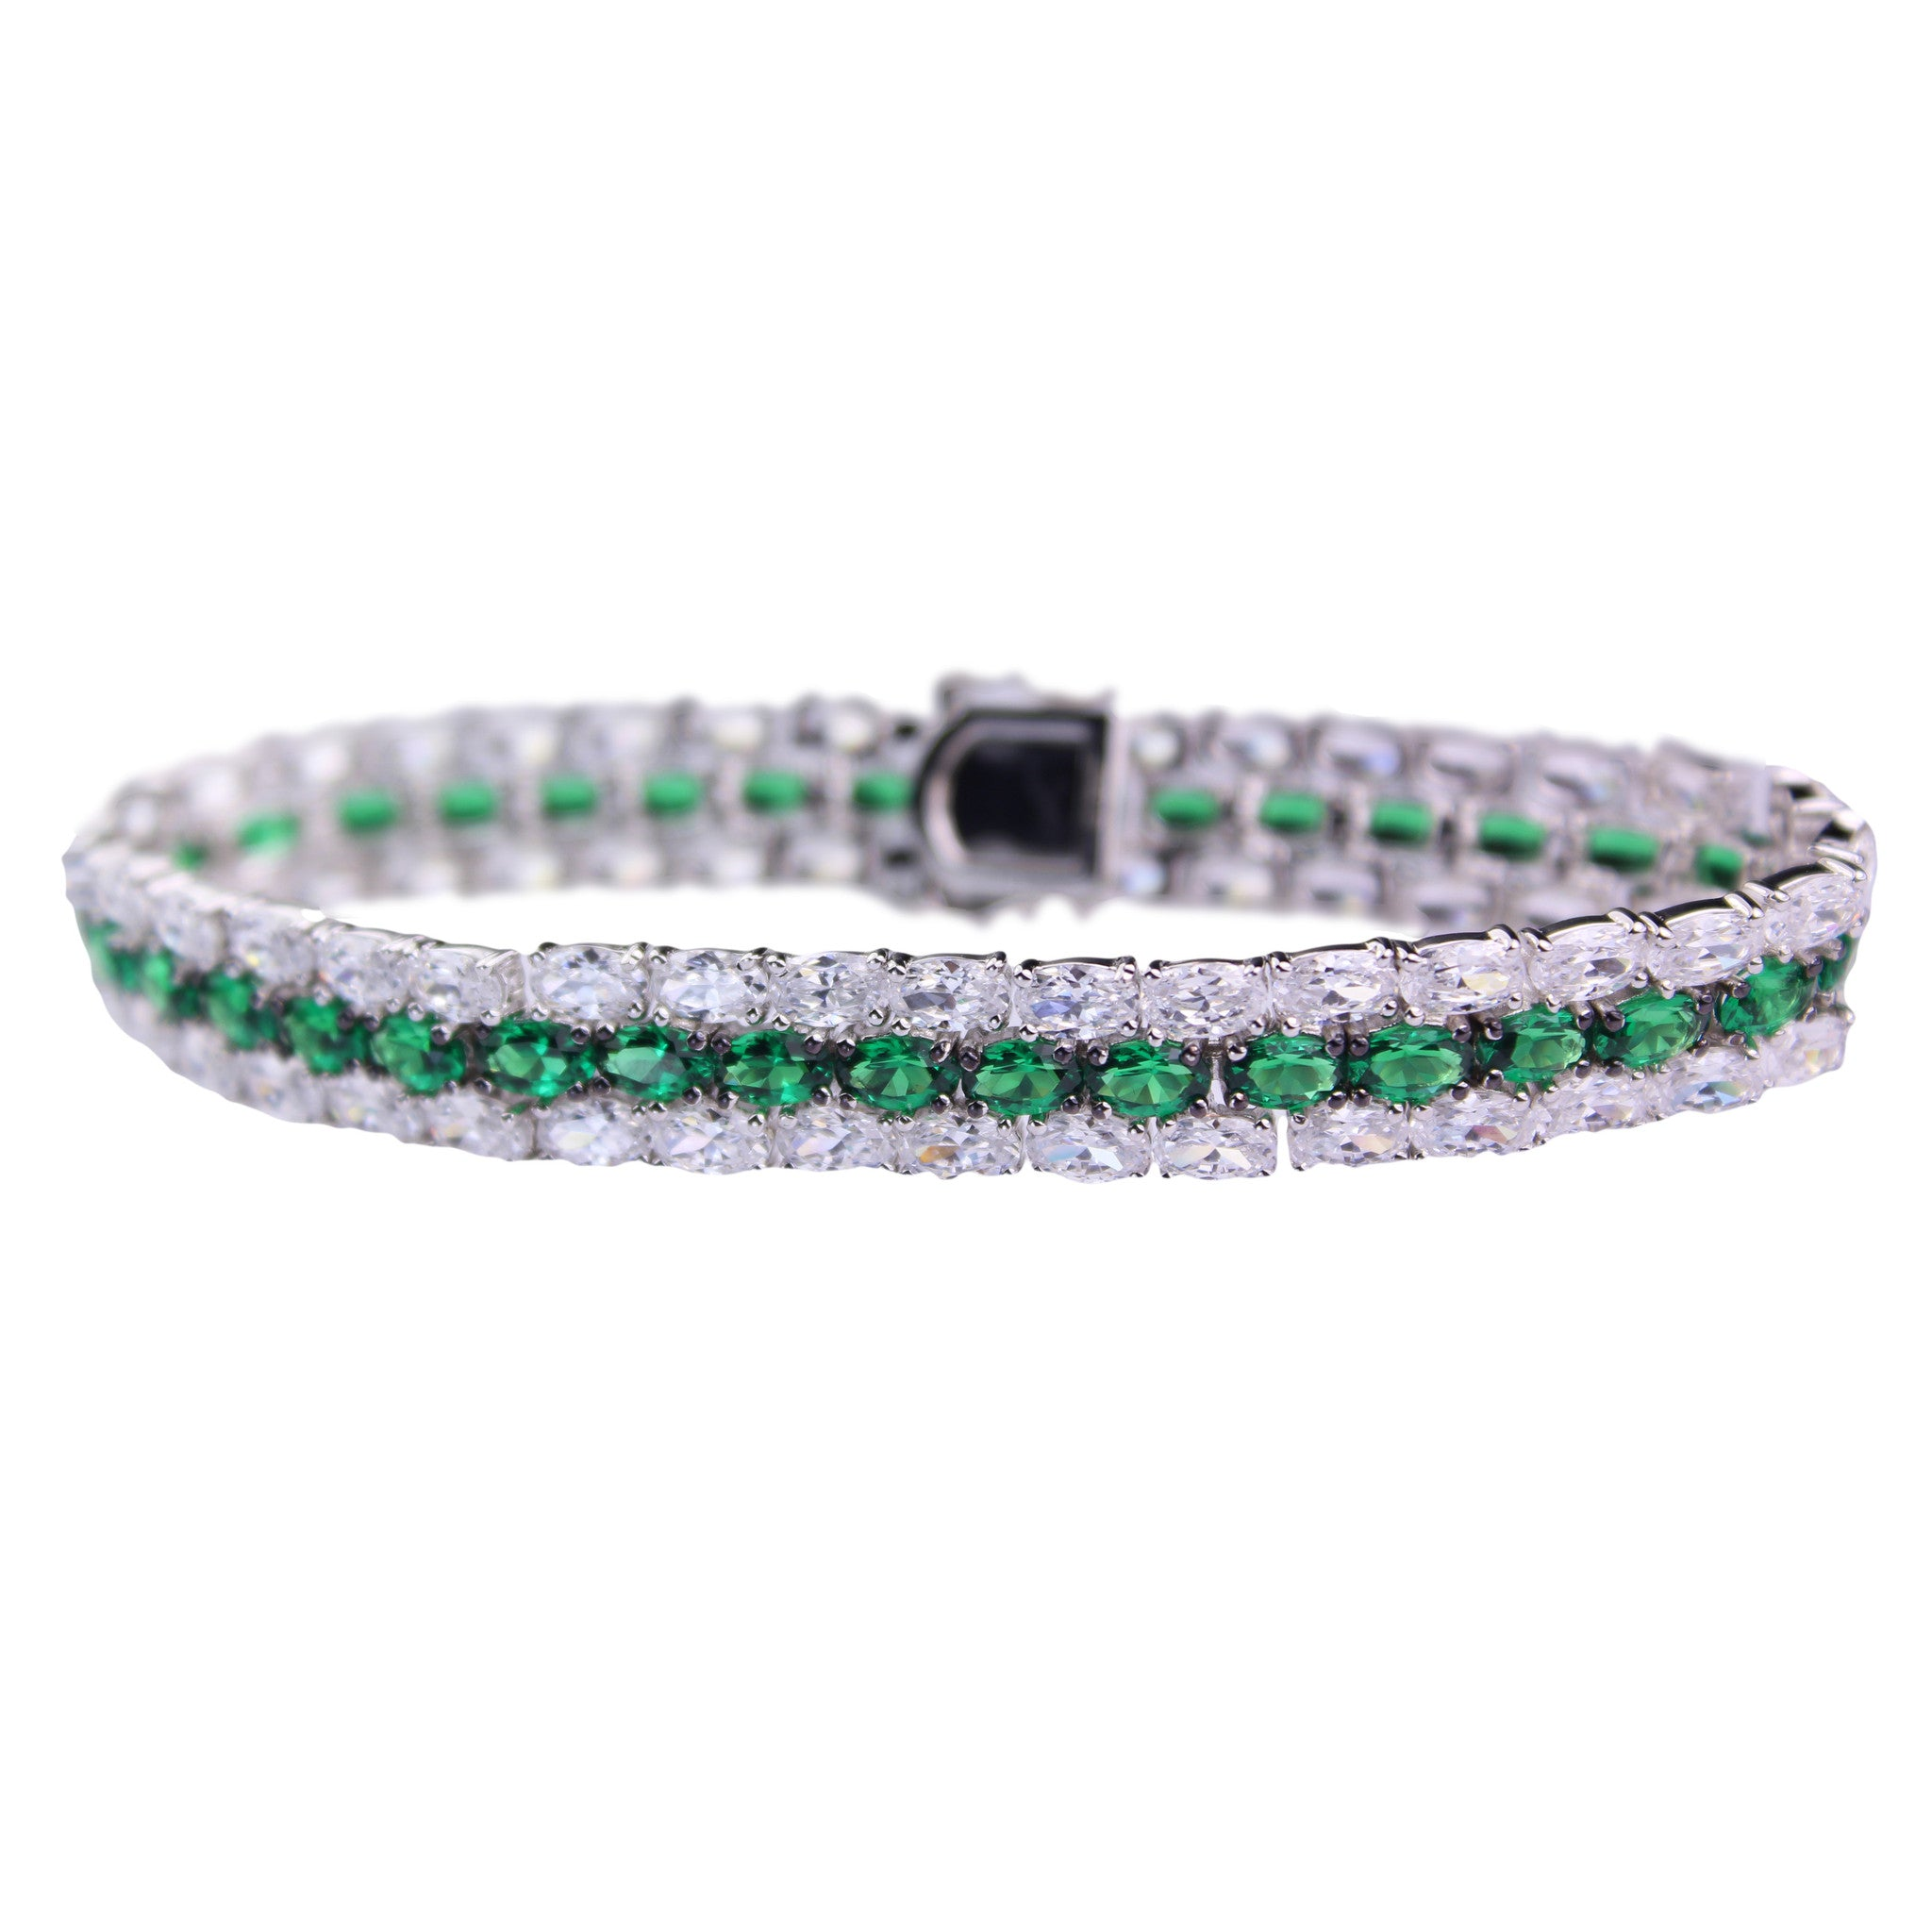 j jewelry emerald bracelet master tb bangle sale bracelets diamond img platinum for bangles elegant at starr id